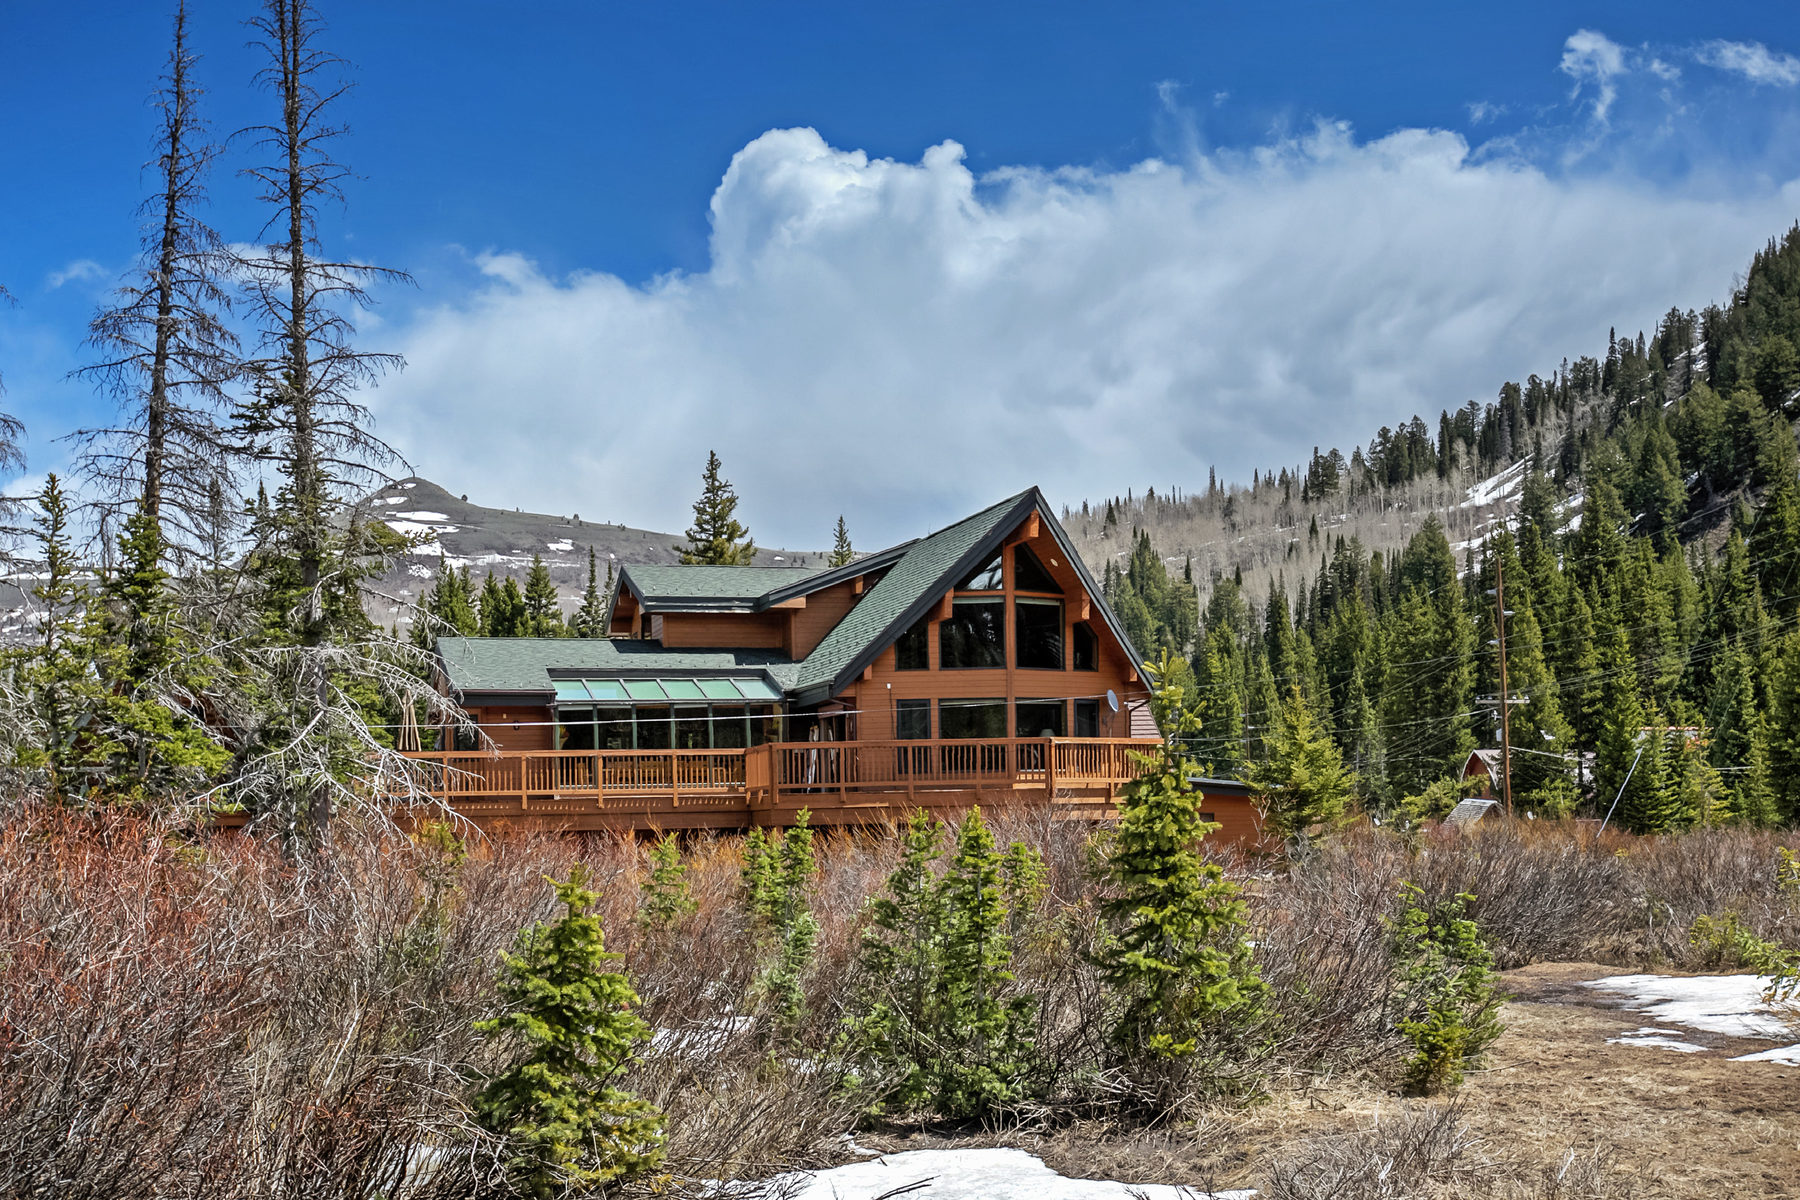 独户住宅 为 销售 在 Spectacular Year Round Luxury Ski Home 7958 S Big Cottonwood Canyon Rd Brighton, 犹他州 84121 美国